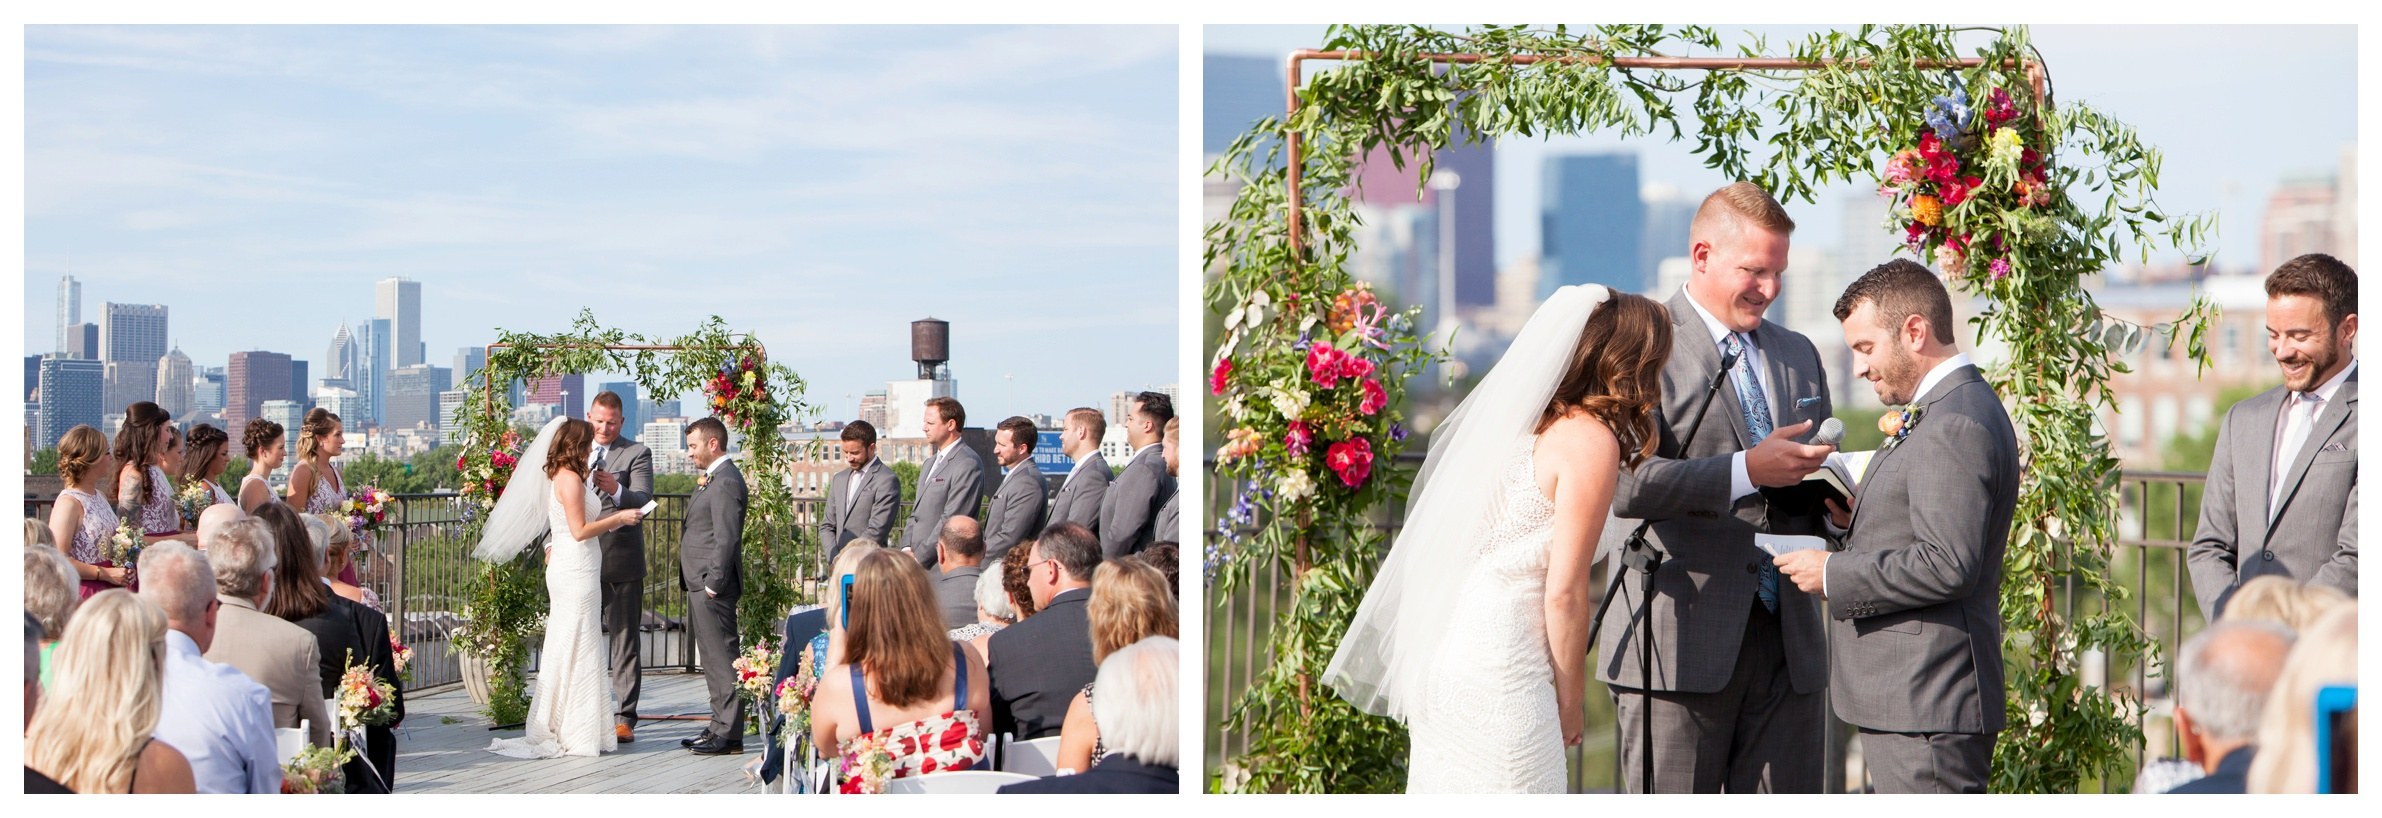 outdoor-ceremony-lacuna-artists-lofts